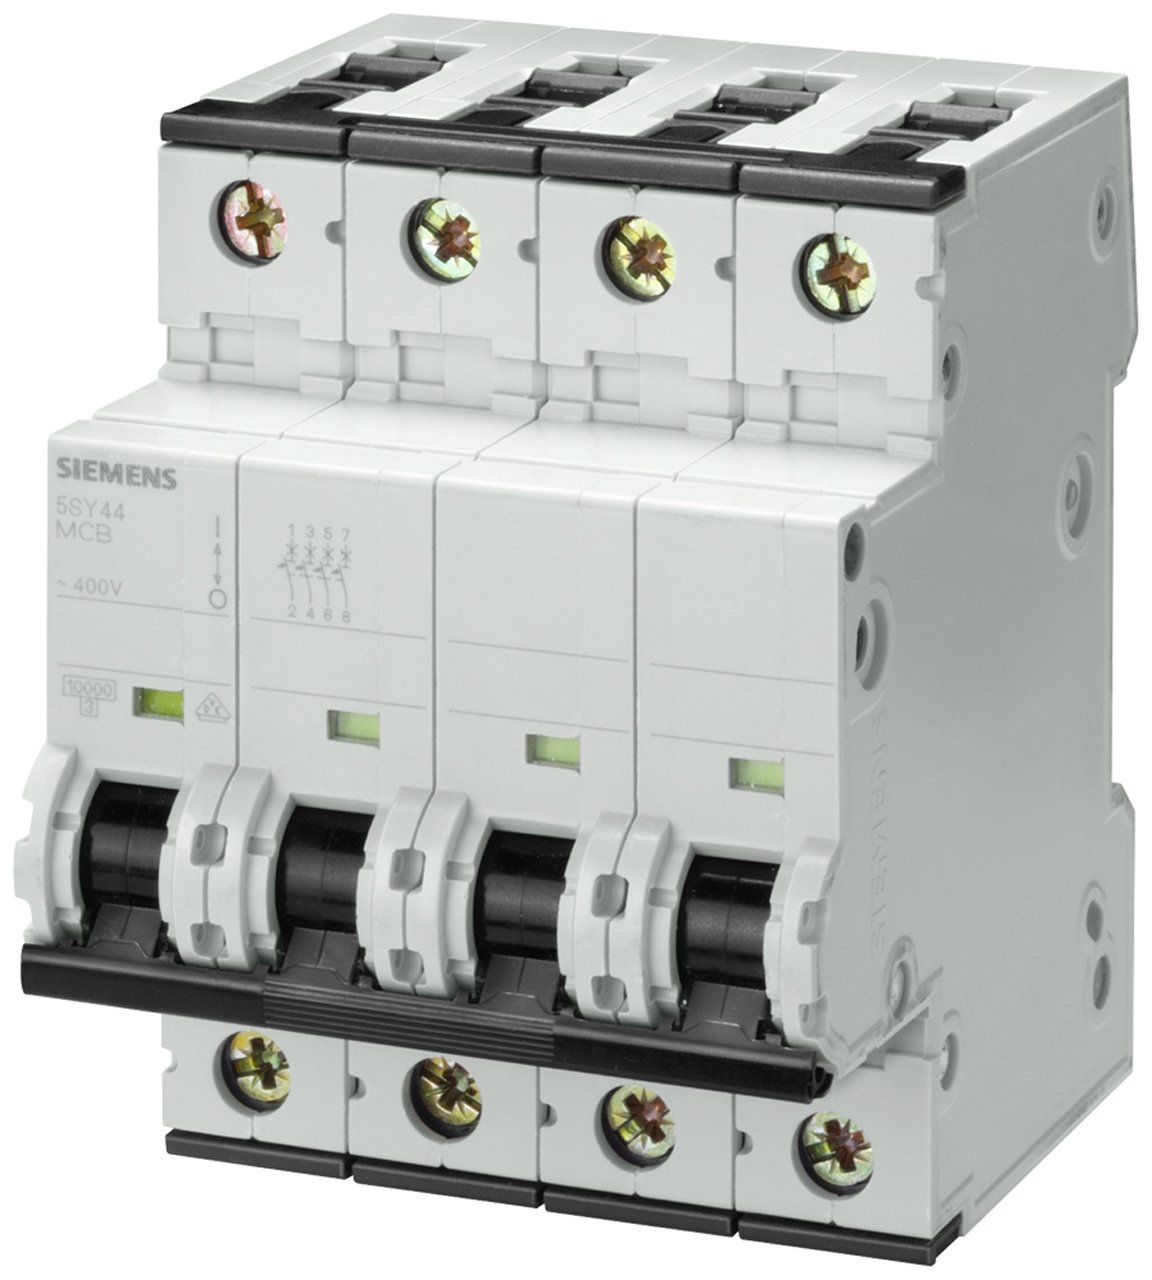 Siemens 5SY44047 Supplementary Protector, UL 1077 Rated, 4 Pole Breaker, 4 Ampere Maximum, Tripping Characteristic C, DIN Rail mounted